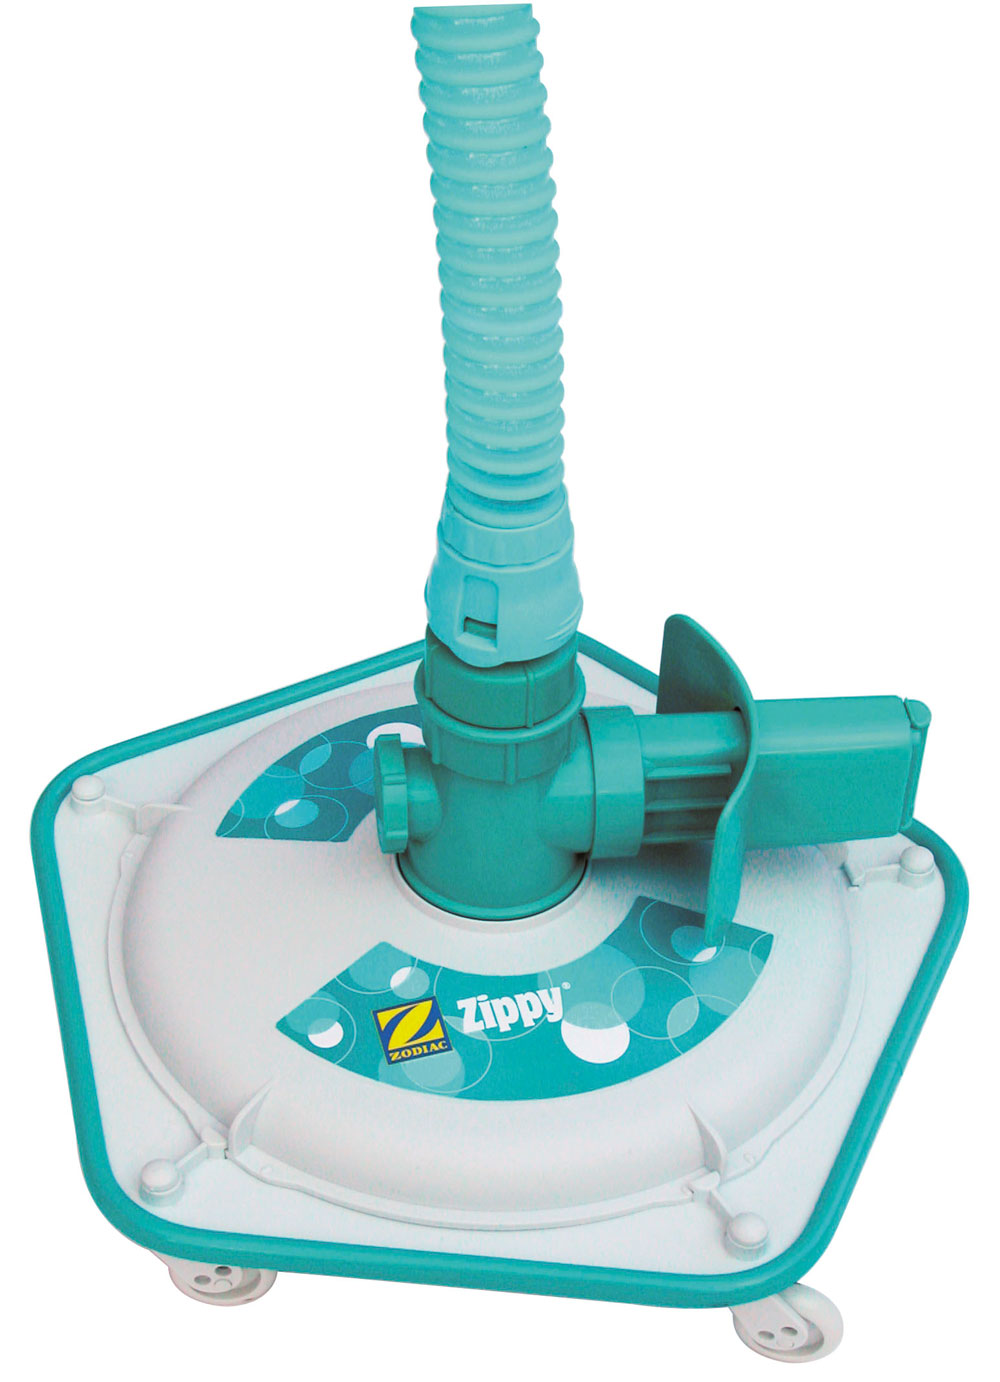 Baracuda Zippy Automatic Pool Cleaner